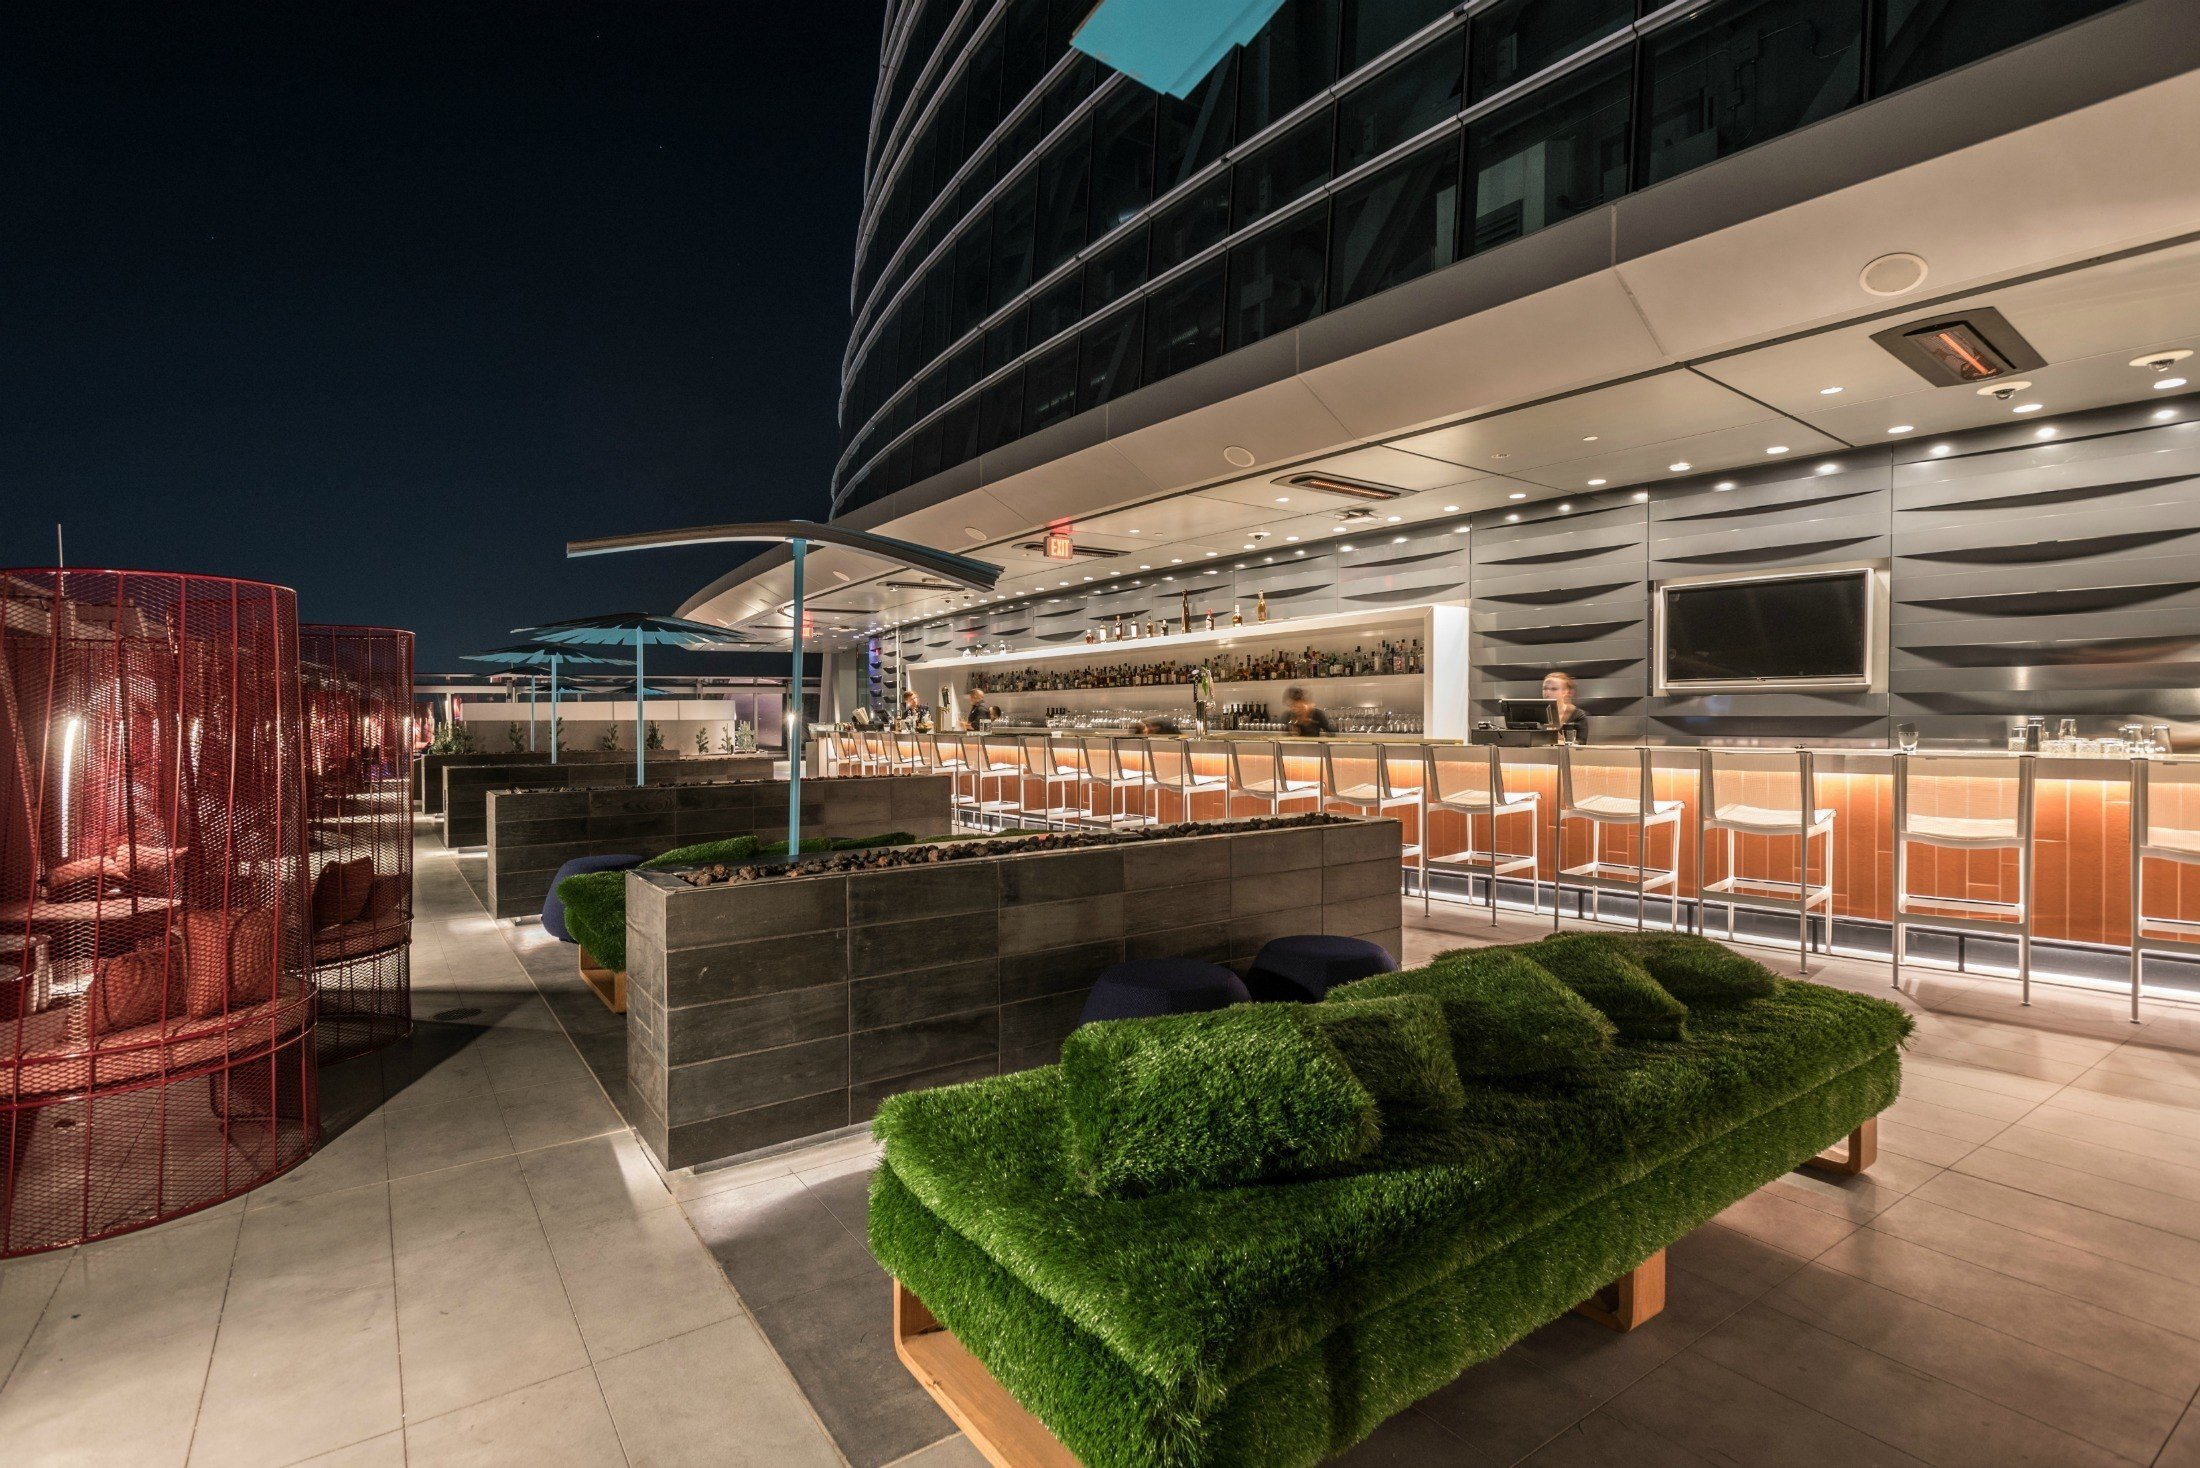 Spire 73 at the InterContinental Los Angeles Downtown is the tallest open air bar in the Western Hemisphere.